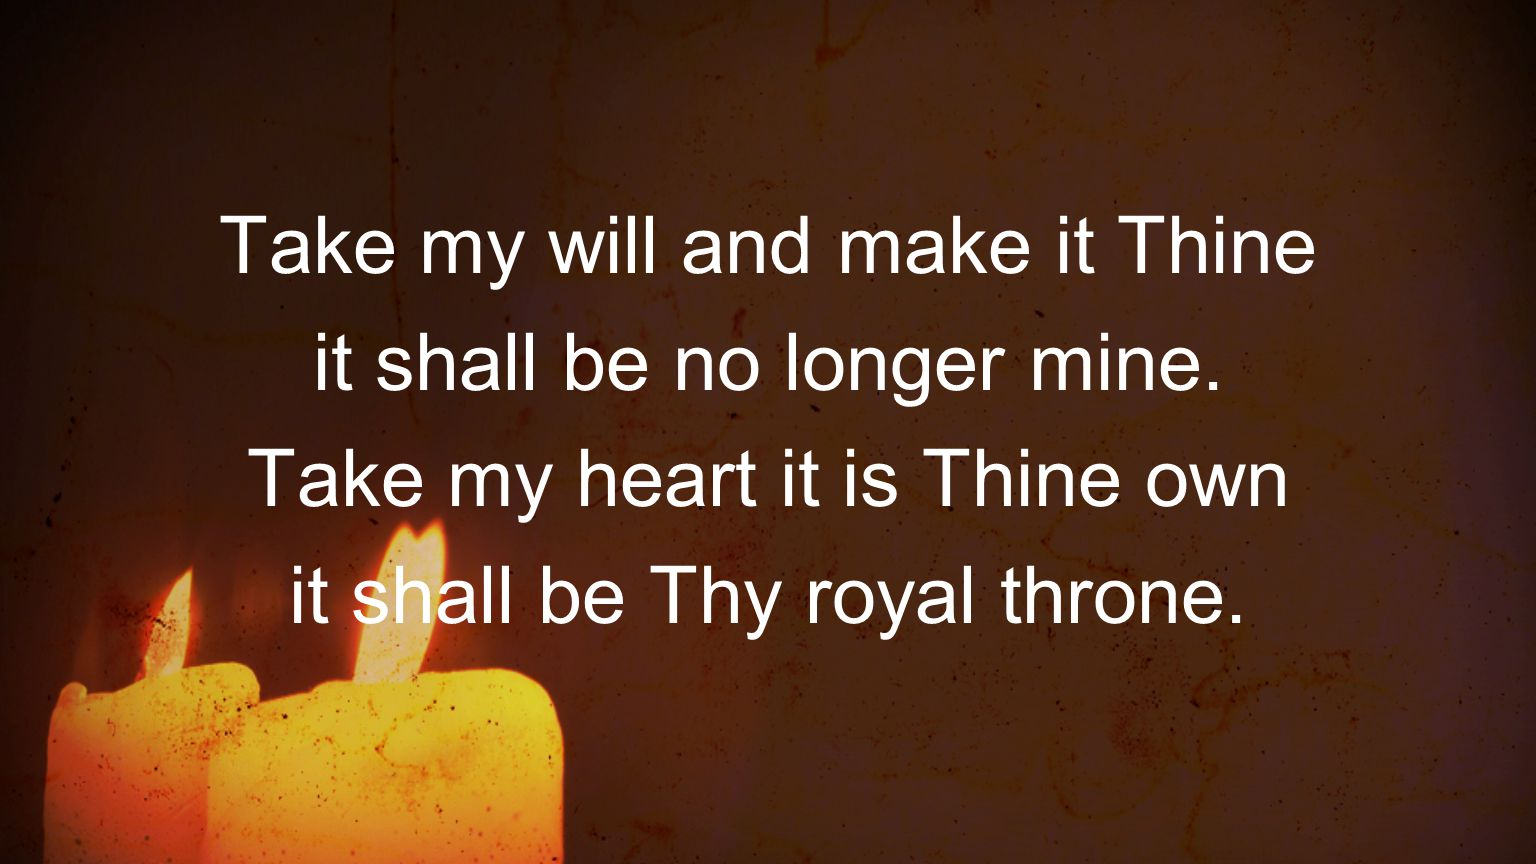 Take my will and make it Thine it shall be no longer mine.